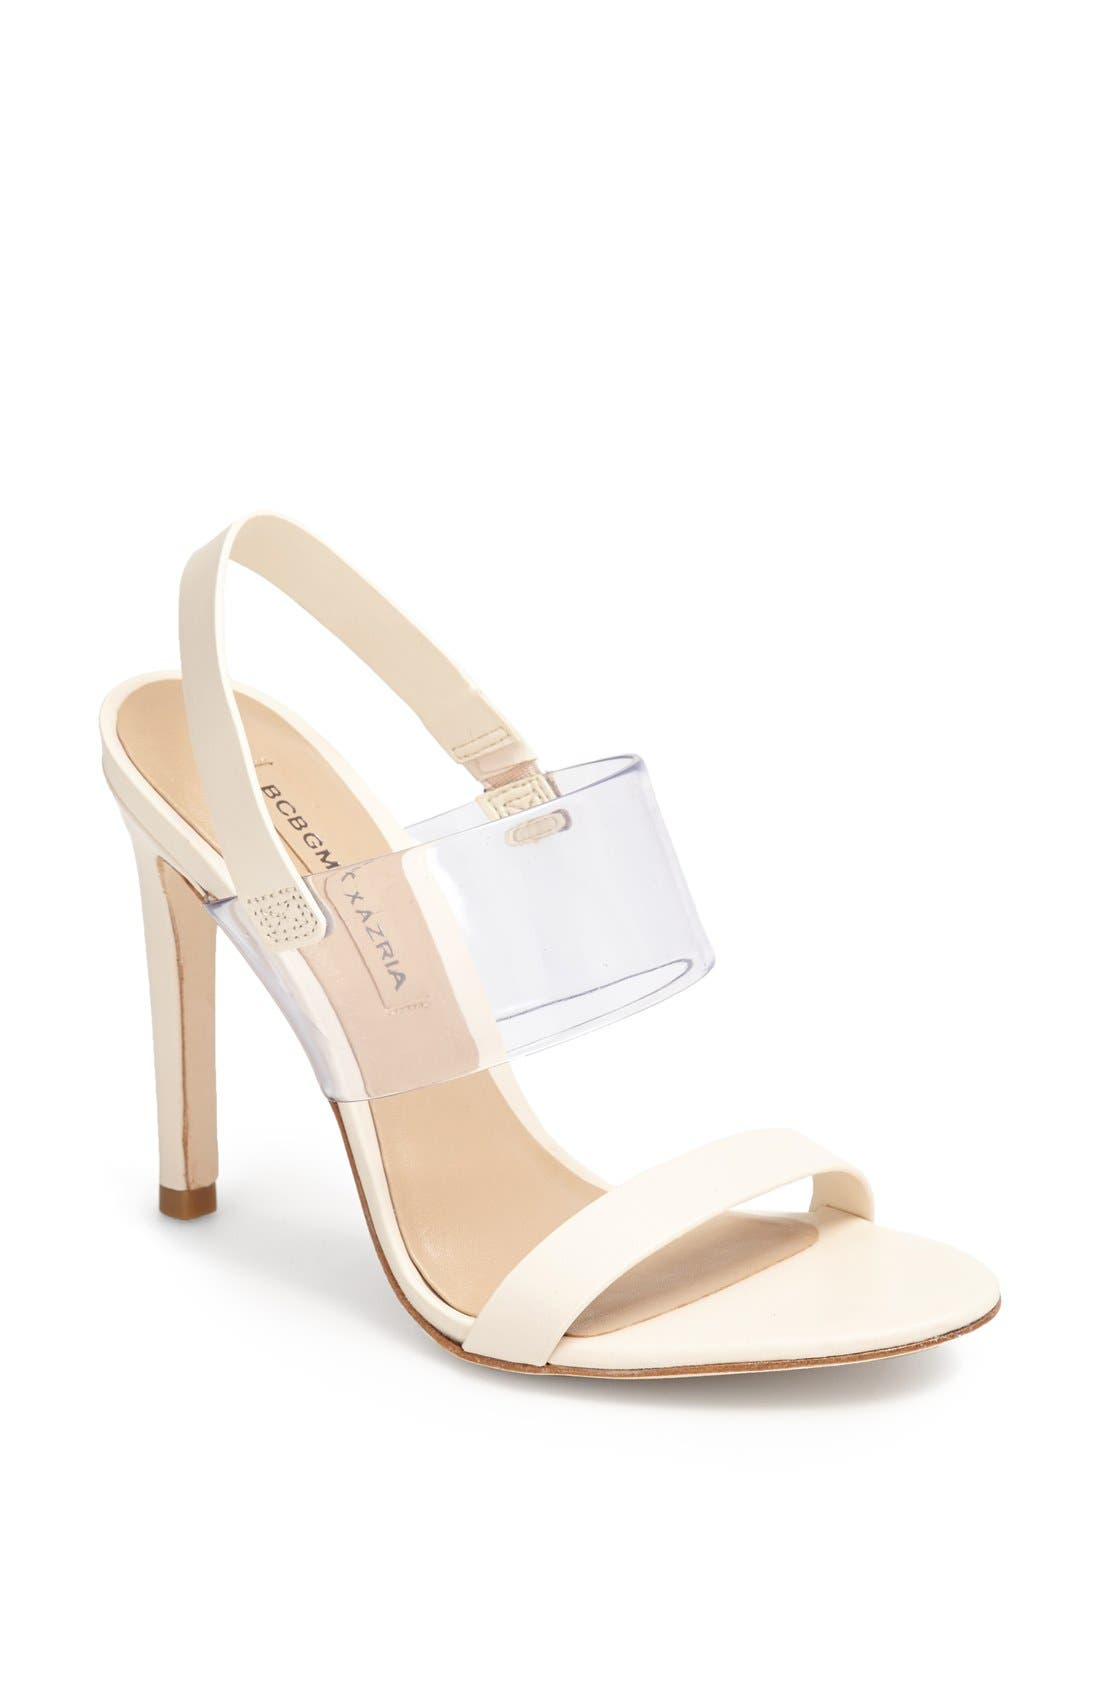 Alternate Image 1 Selected - BCBGMAXAZRIA 'Jash' Sandal